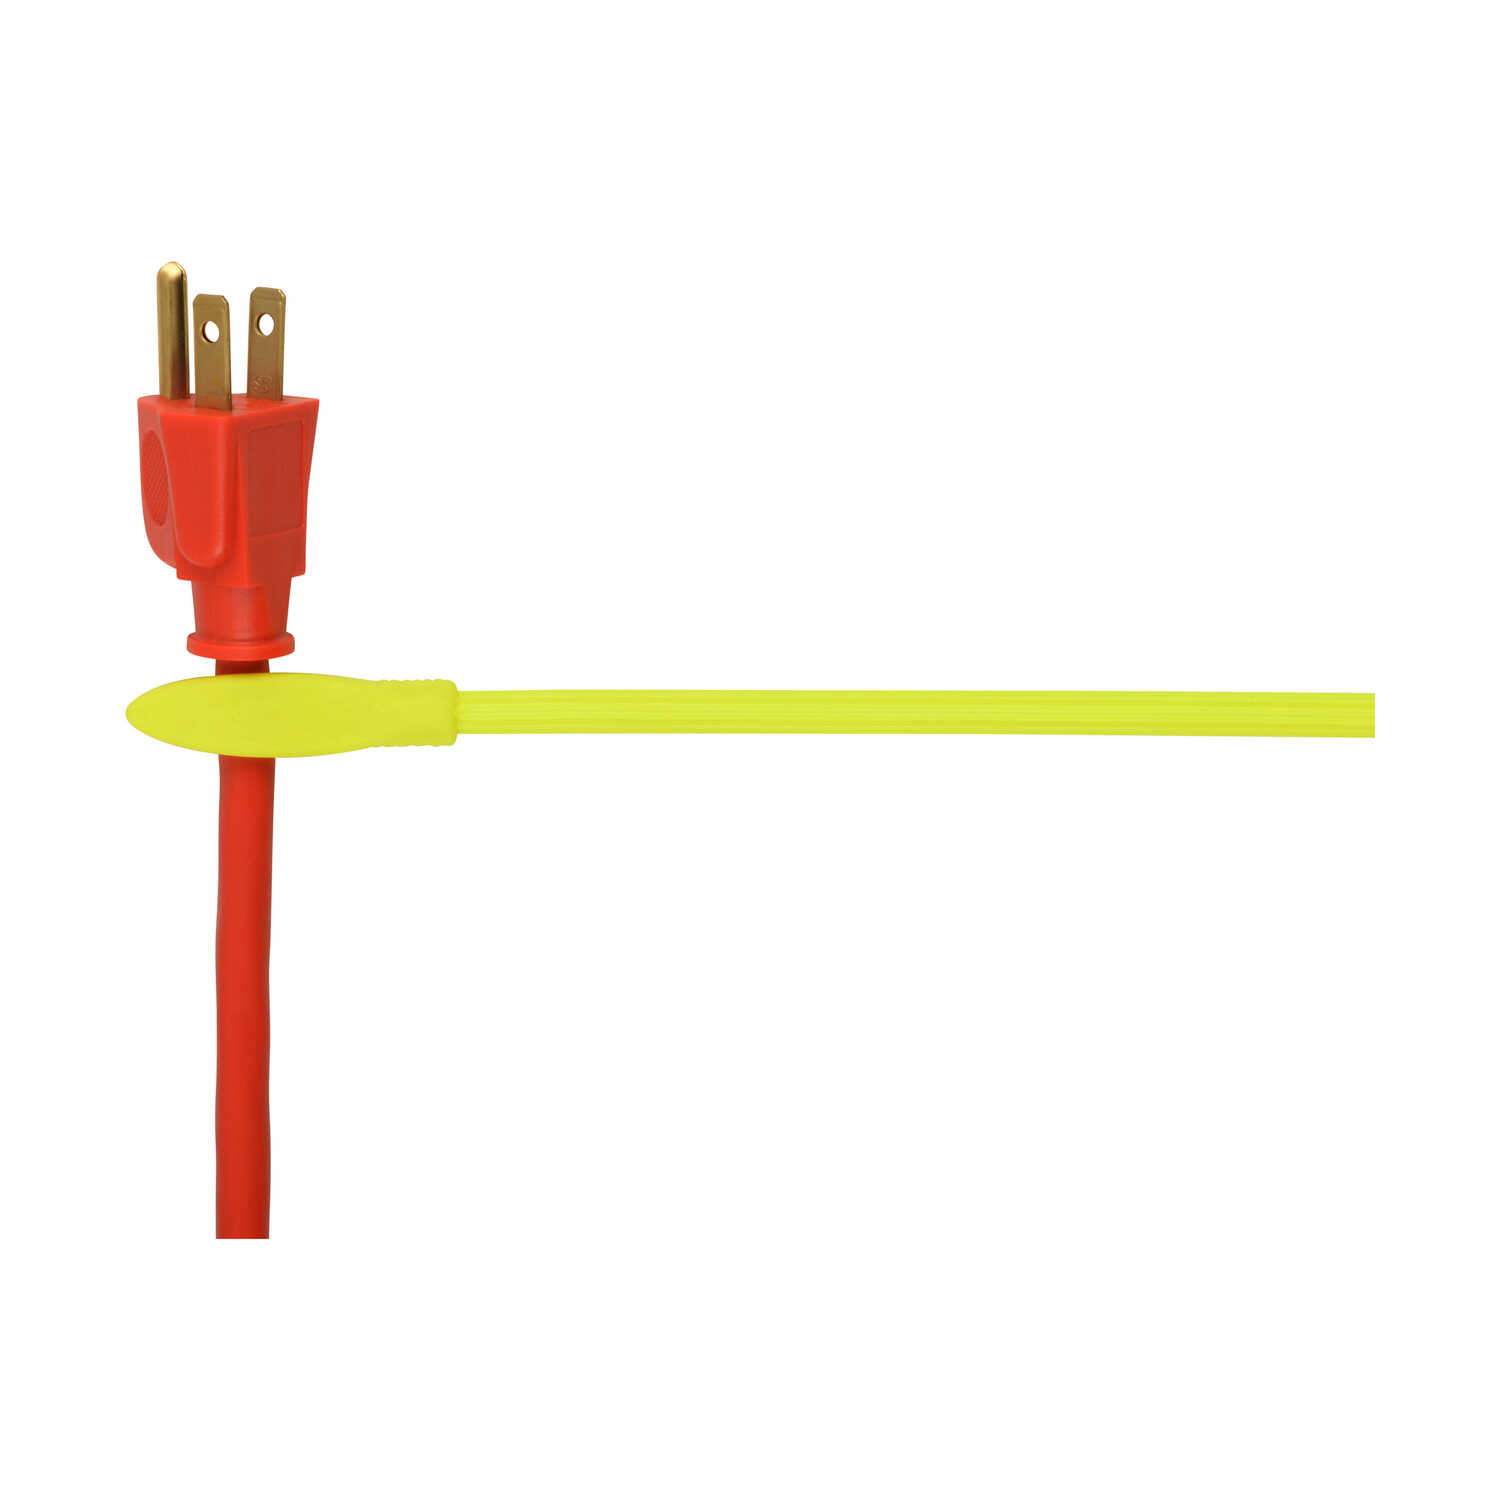 Nite Ize  Gear Tie Cordable  18 in. L Yellow  Cable Tie  2 pk